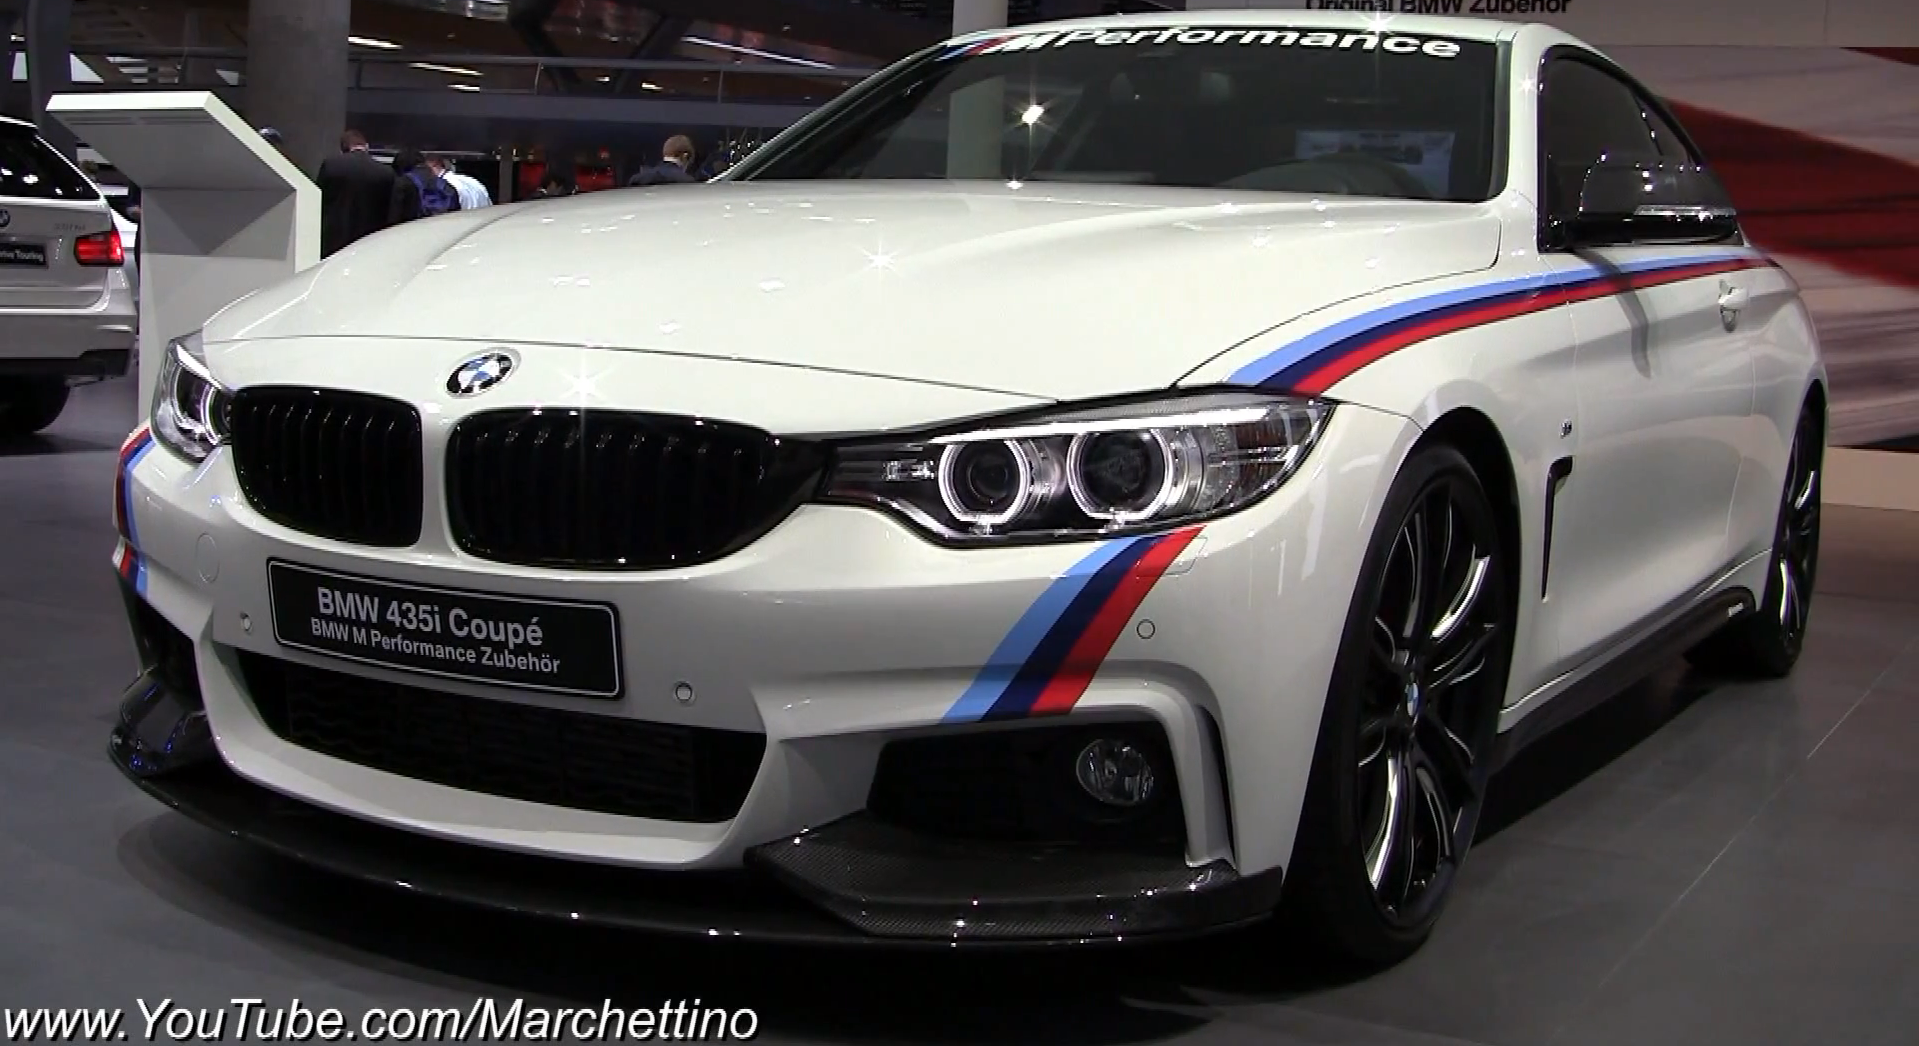 2014 bmw 435i m performance walkaround at 2013 iaa autoevolution. Black Bedroom Furniture Sets. Home Design Ideas